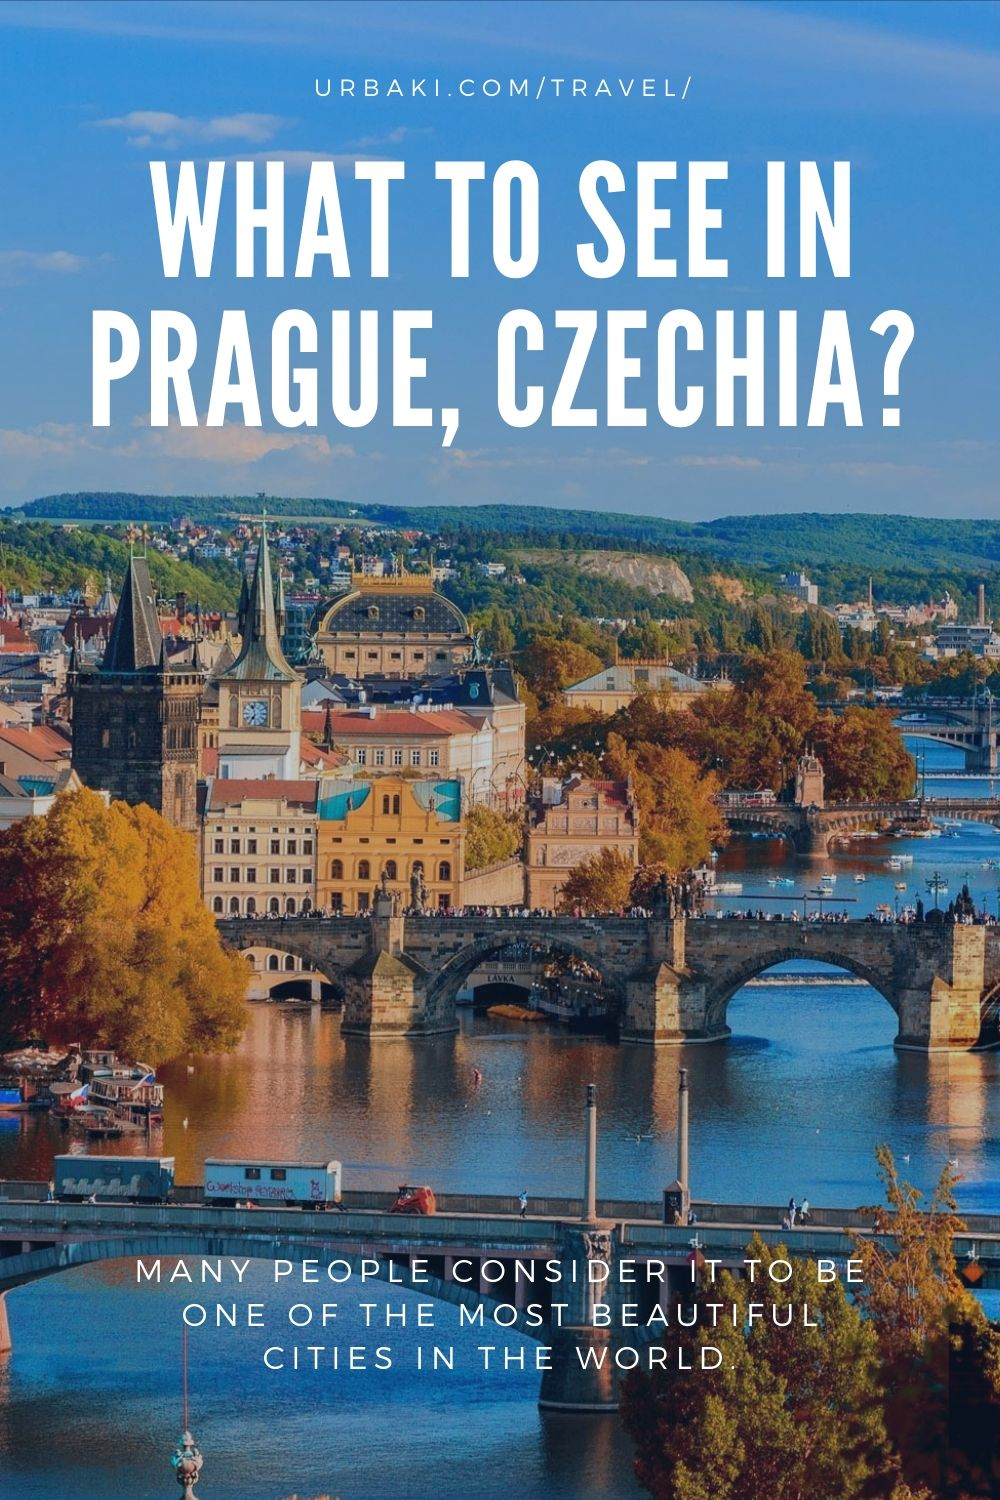 What to See in Prague Czechia